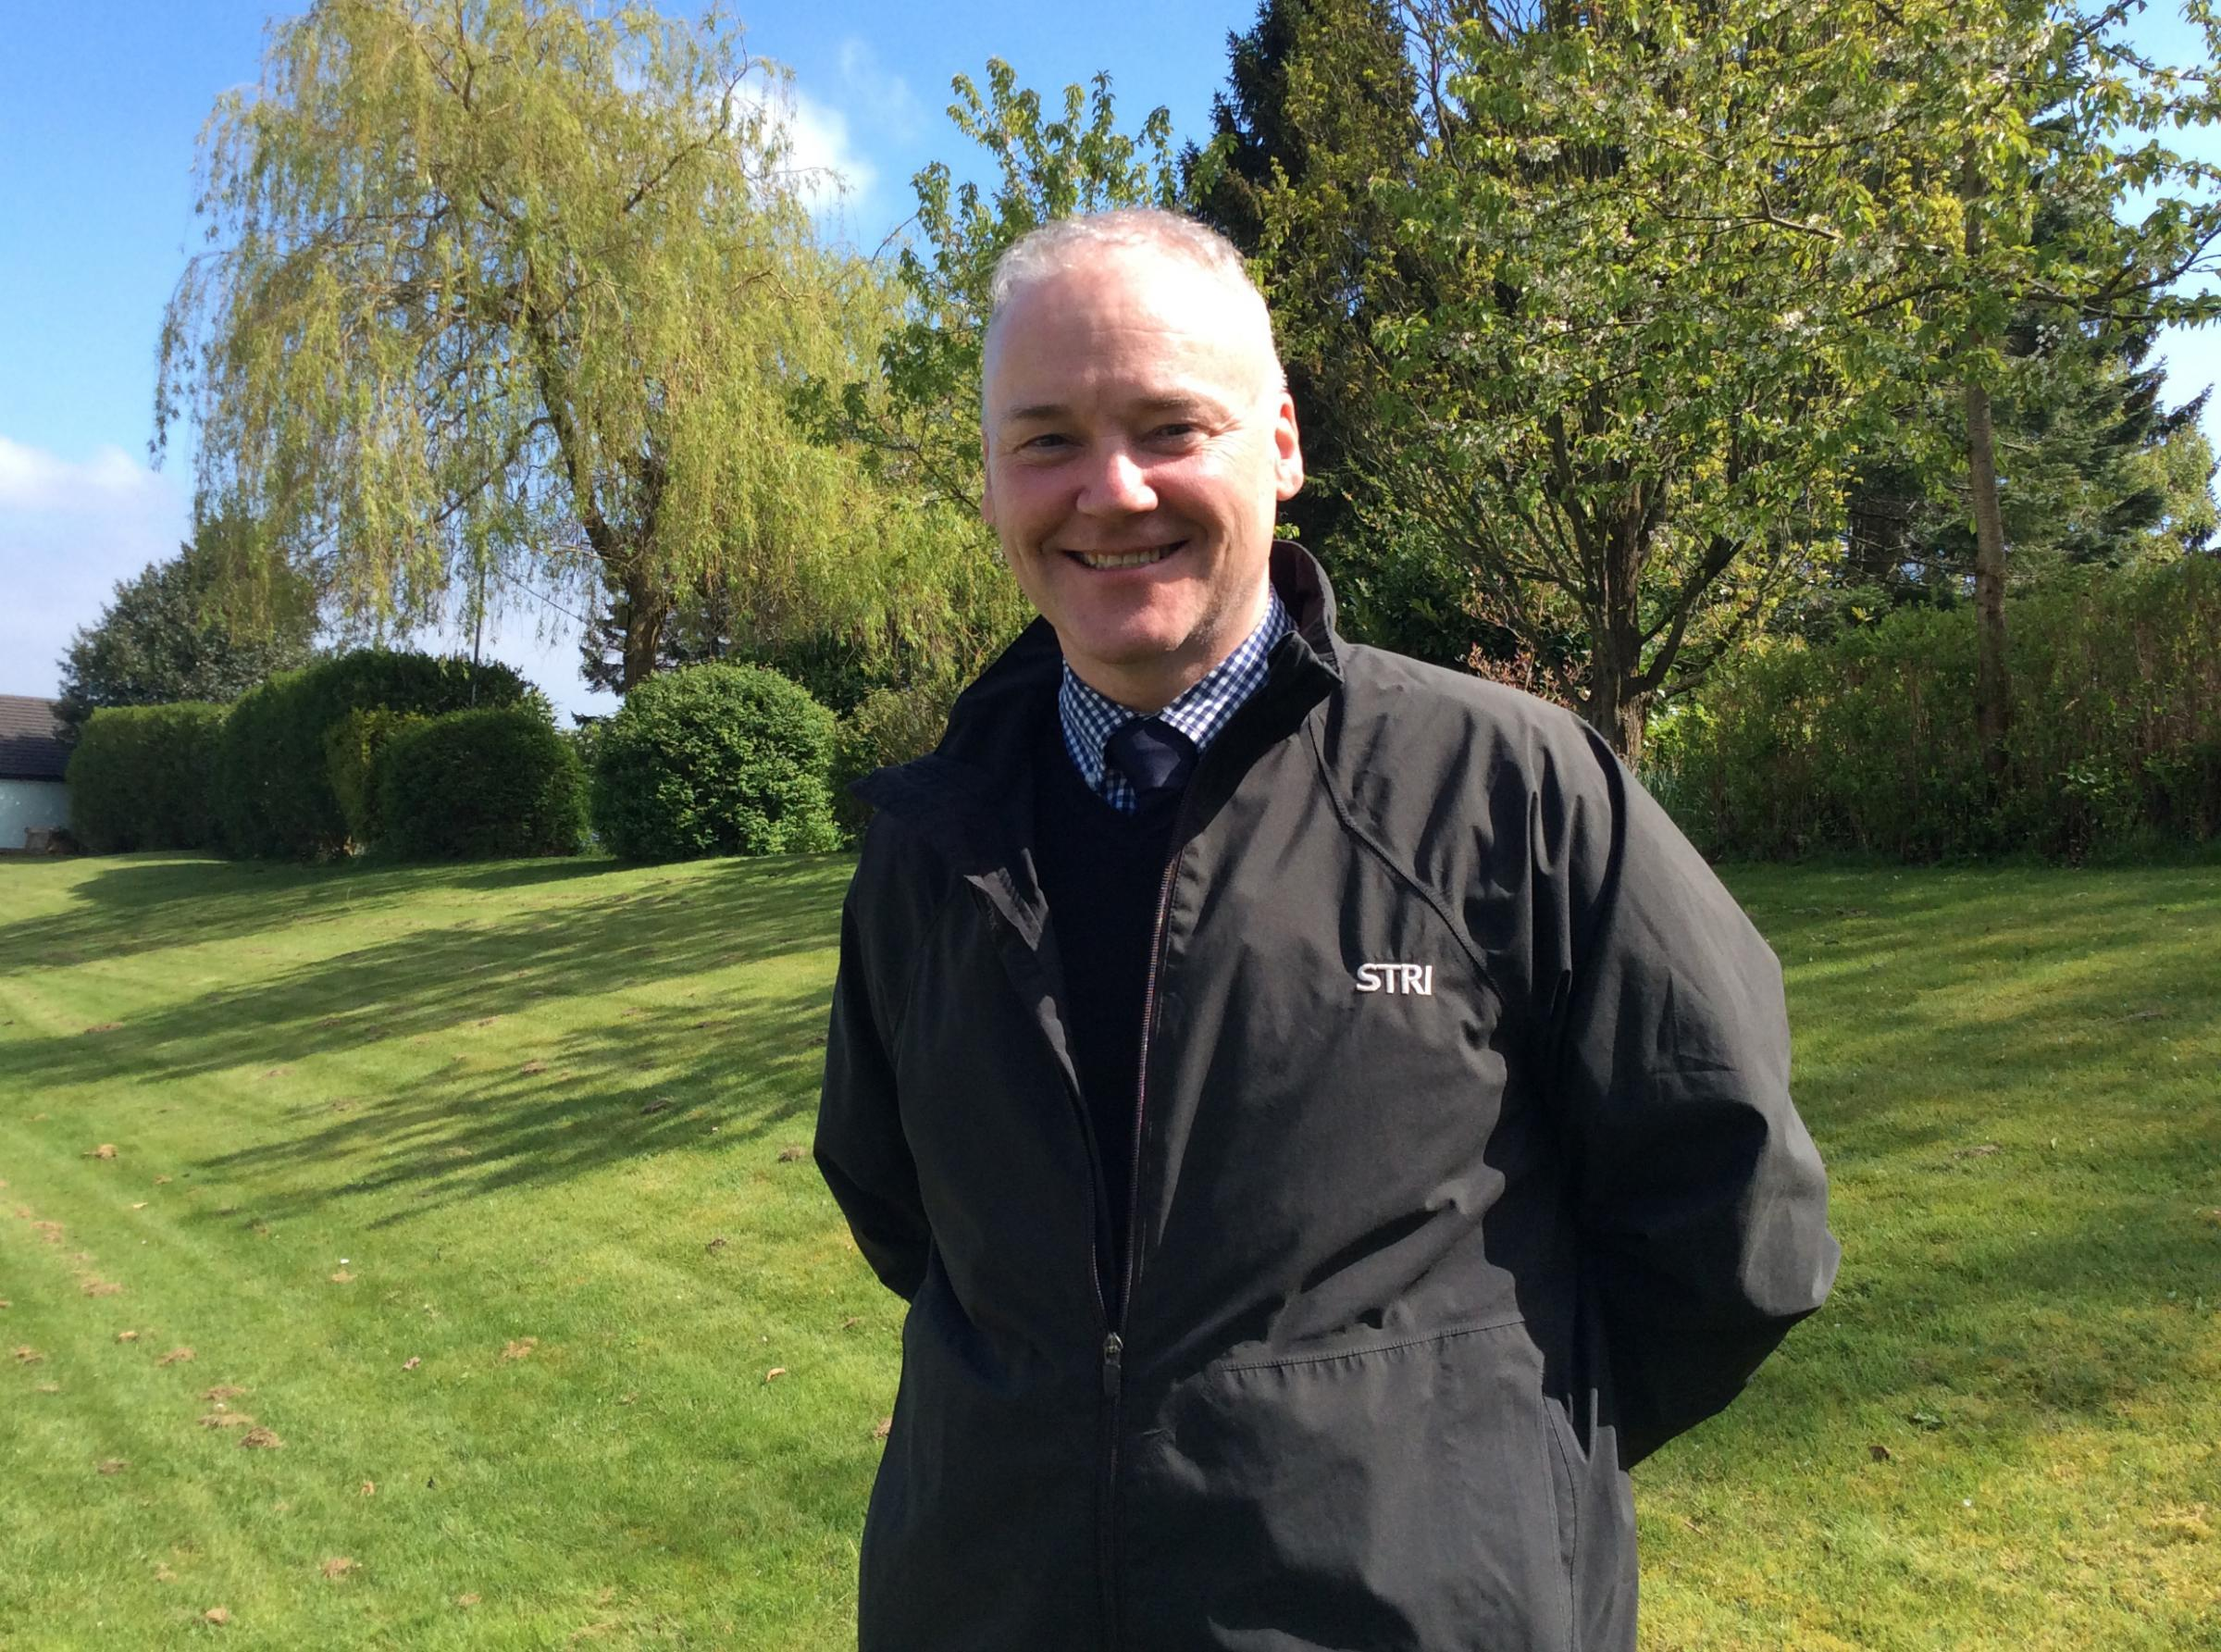 Sports pitch firm appoints consultant